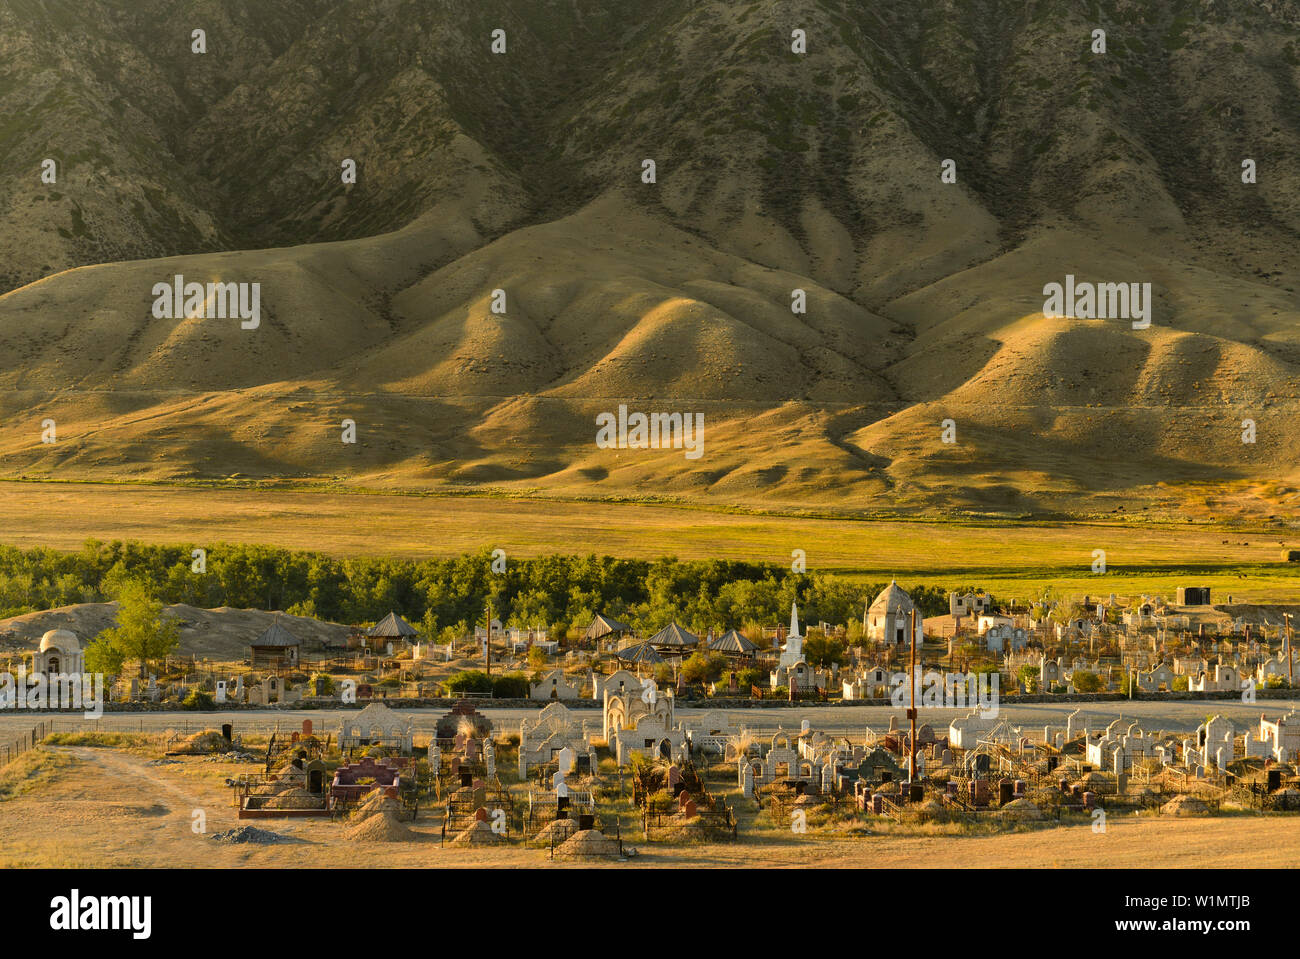 Cemetry of village Saty in front of mountain scenery, Tien Shan Mountains, Tian Shan, Almaty region, Kazakhstan, Central Asia, Asia Stock Photo